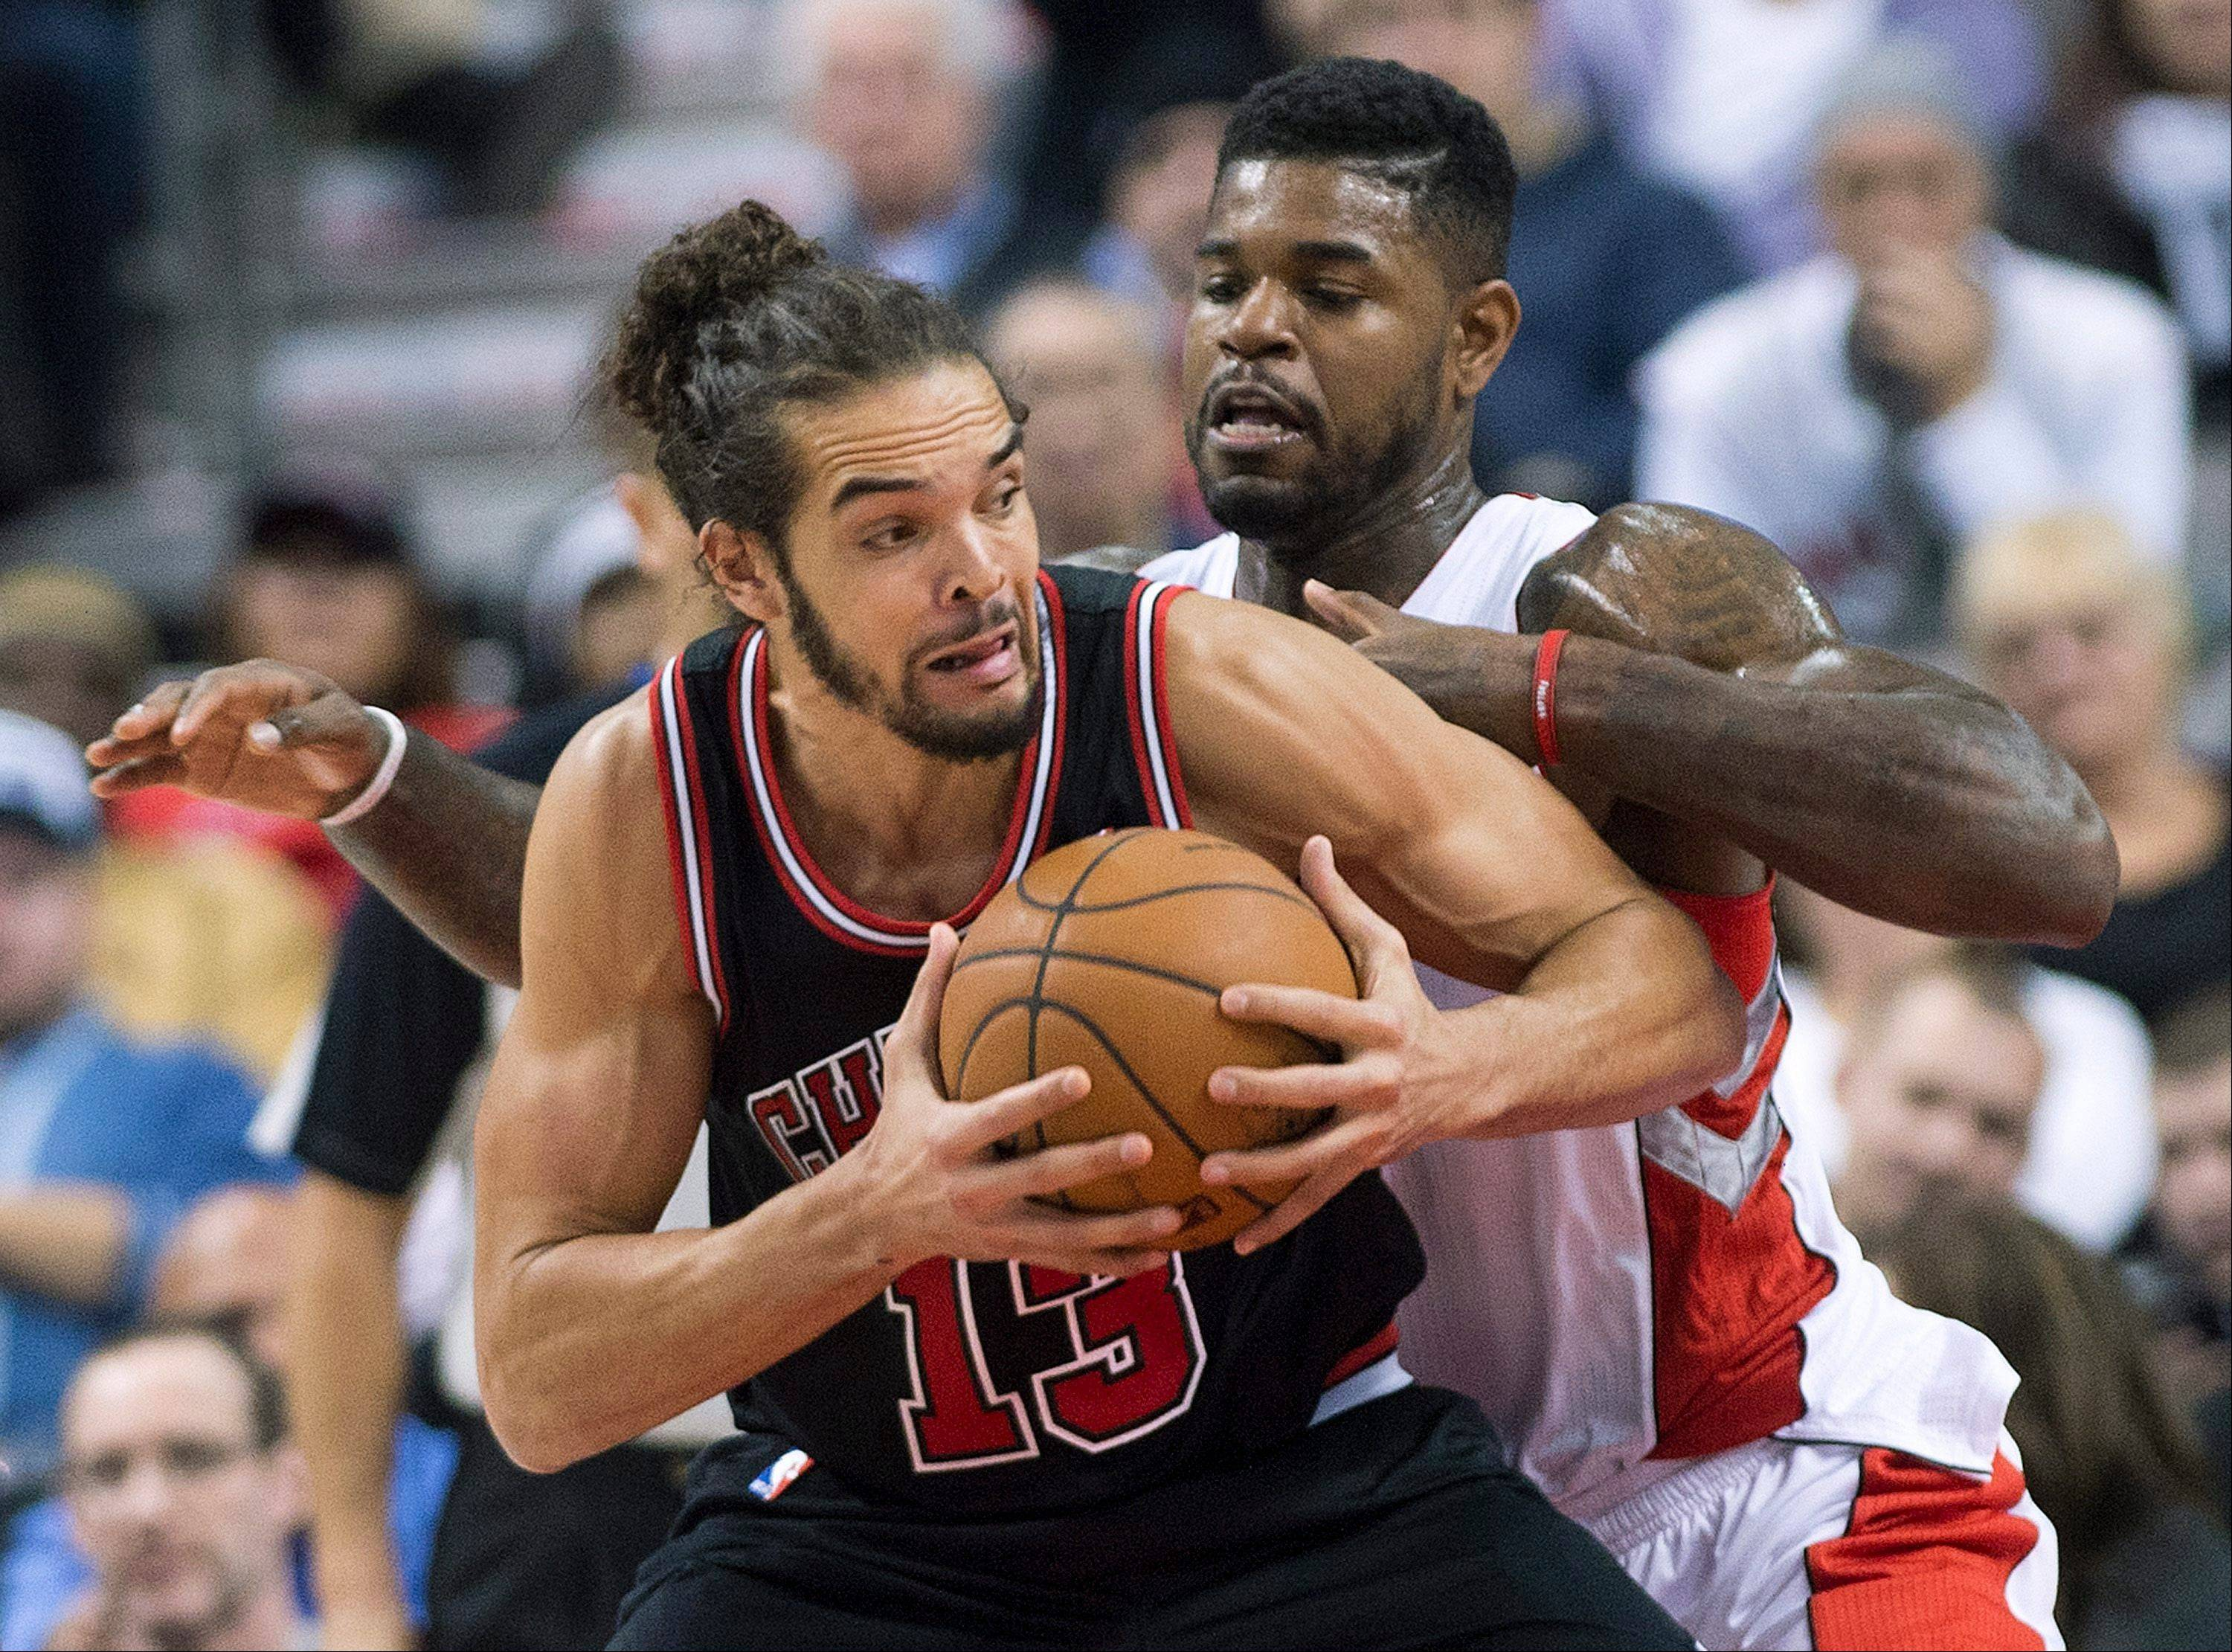 Toronto Raptors forward Amir Johnson, back, guards against Chicago Bulls forward Joakim Noah, front, during first-half NBA basketball game action in Toronto, Friday, Nov. 15, 2013.